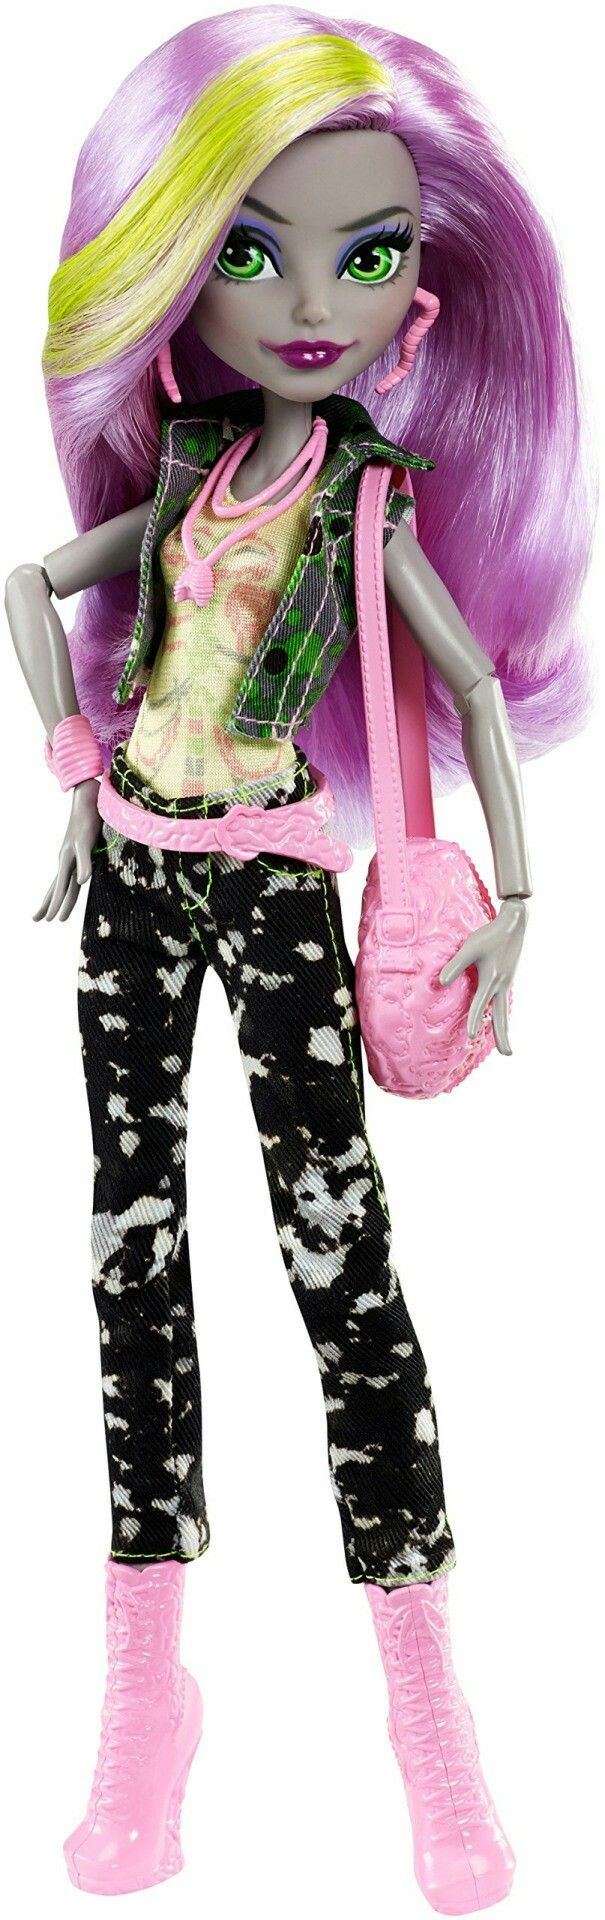 Moanica D'Kay -- Monster High doll.